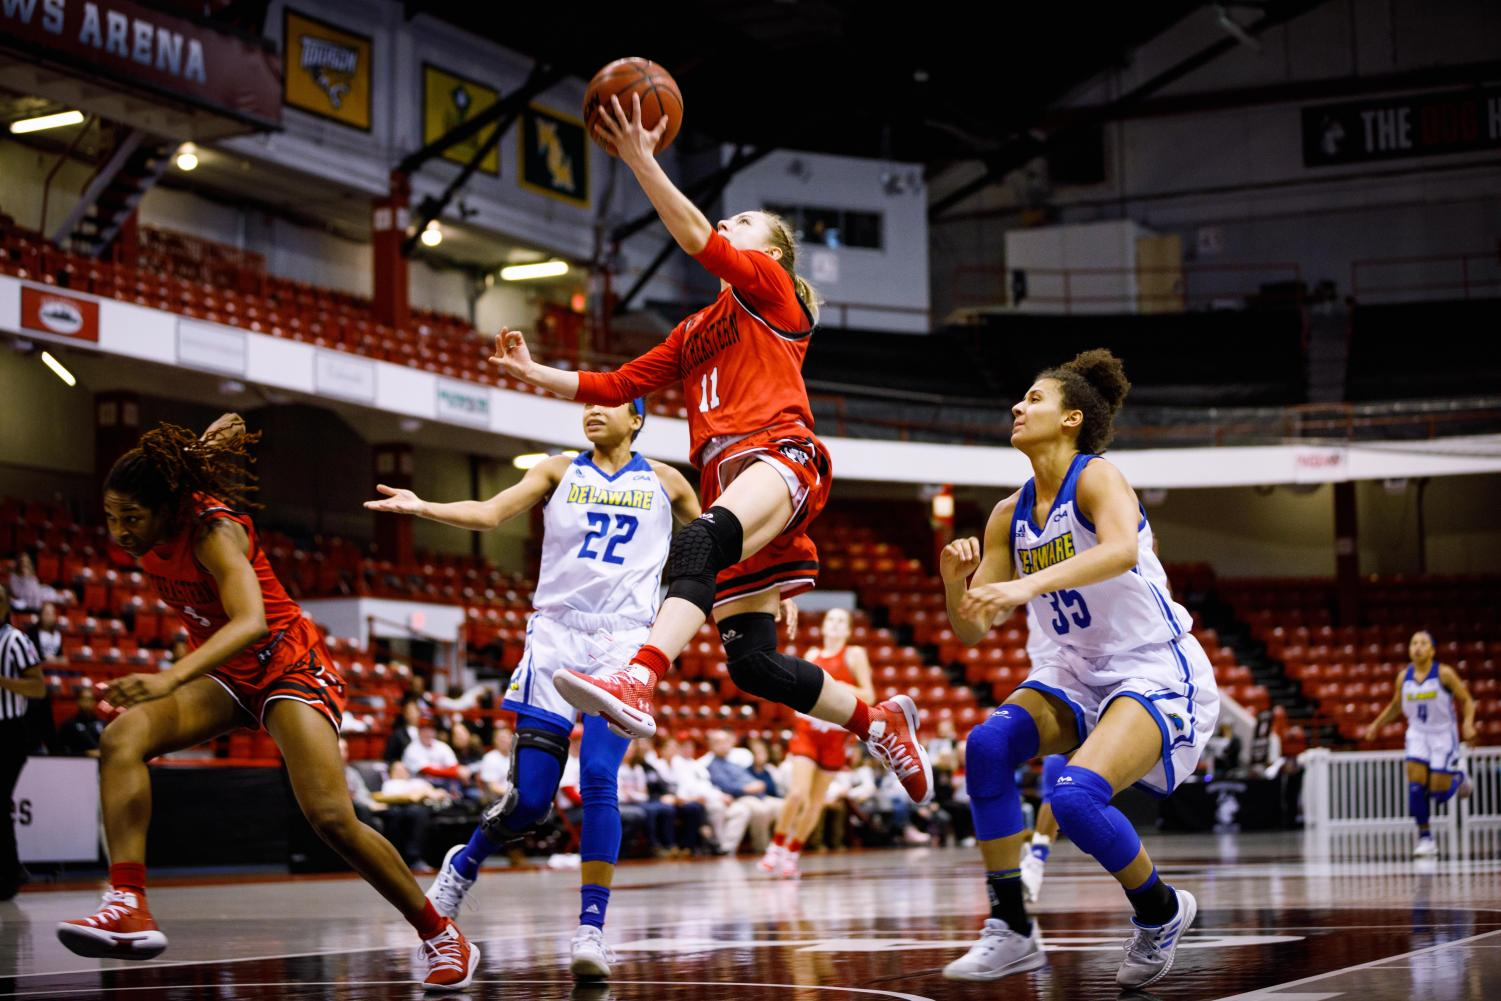 Junior guard Stella Clark goes up for a layup in a game last season versus Delaware.